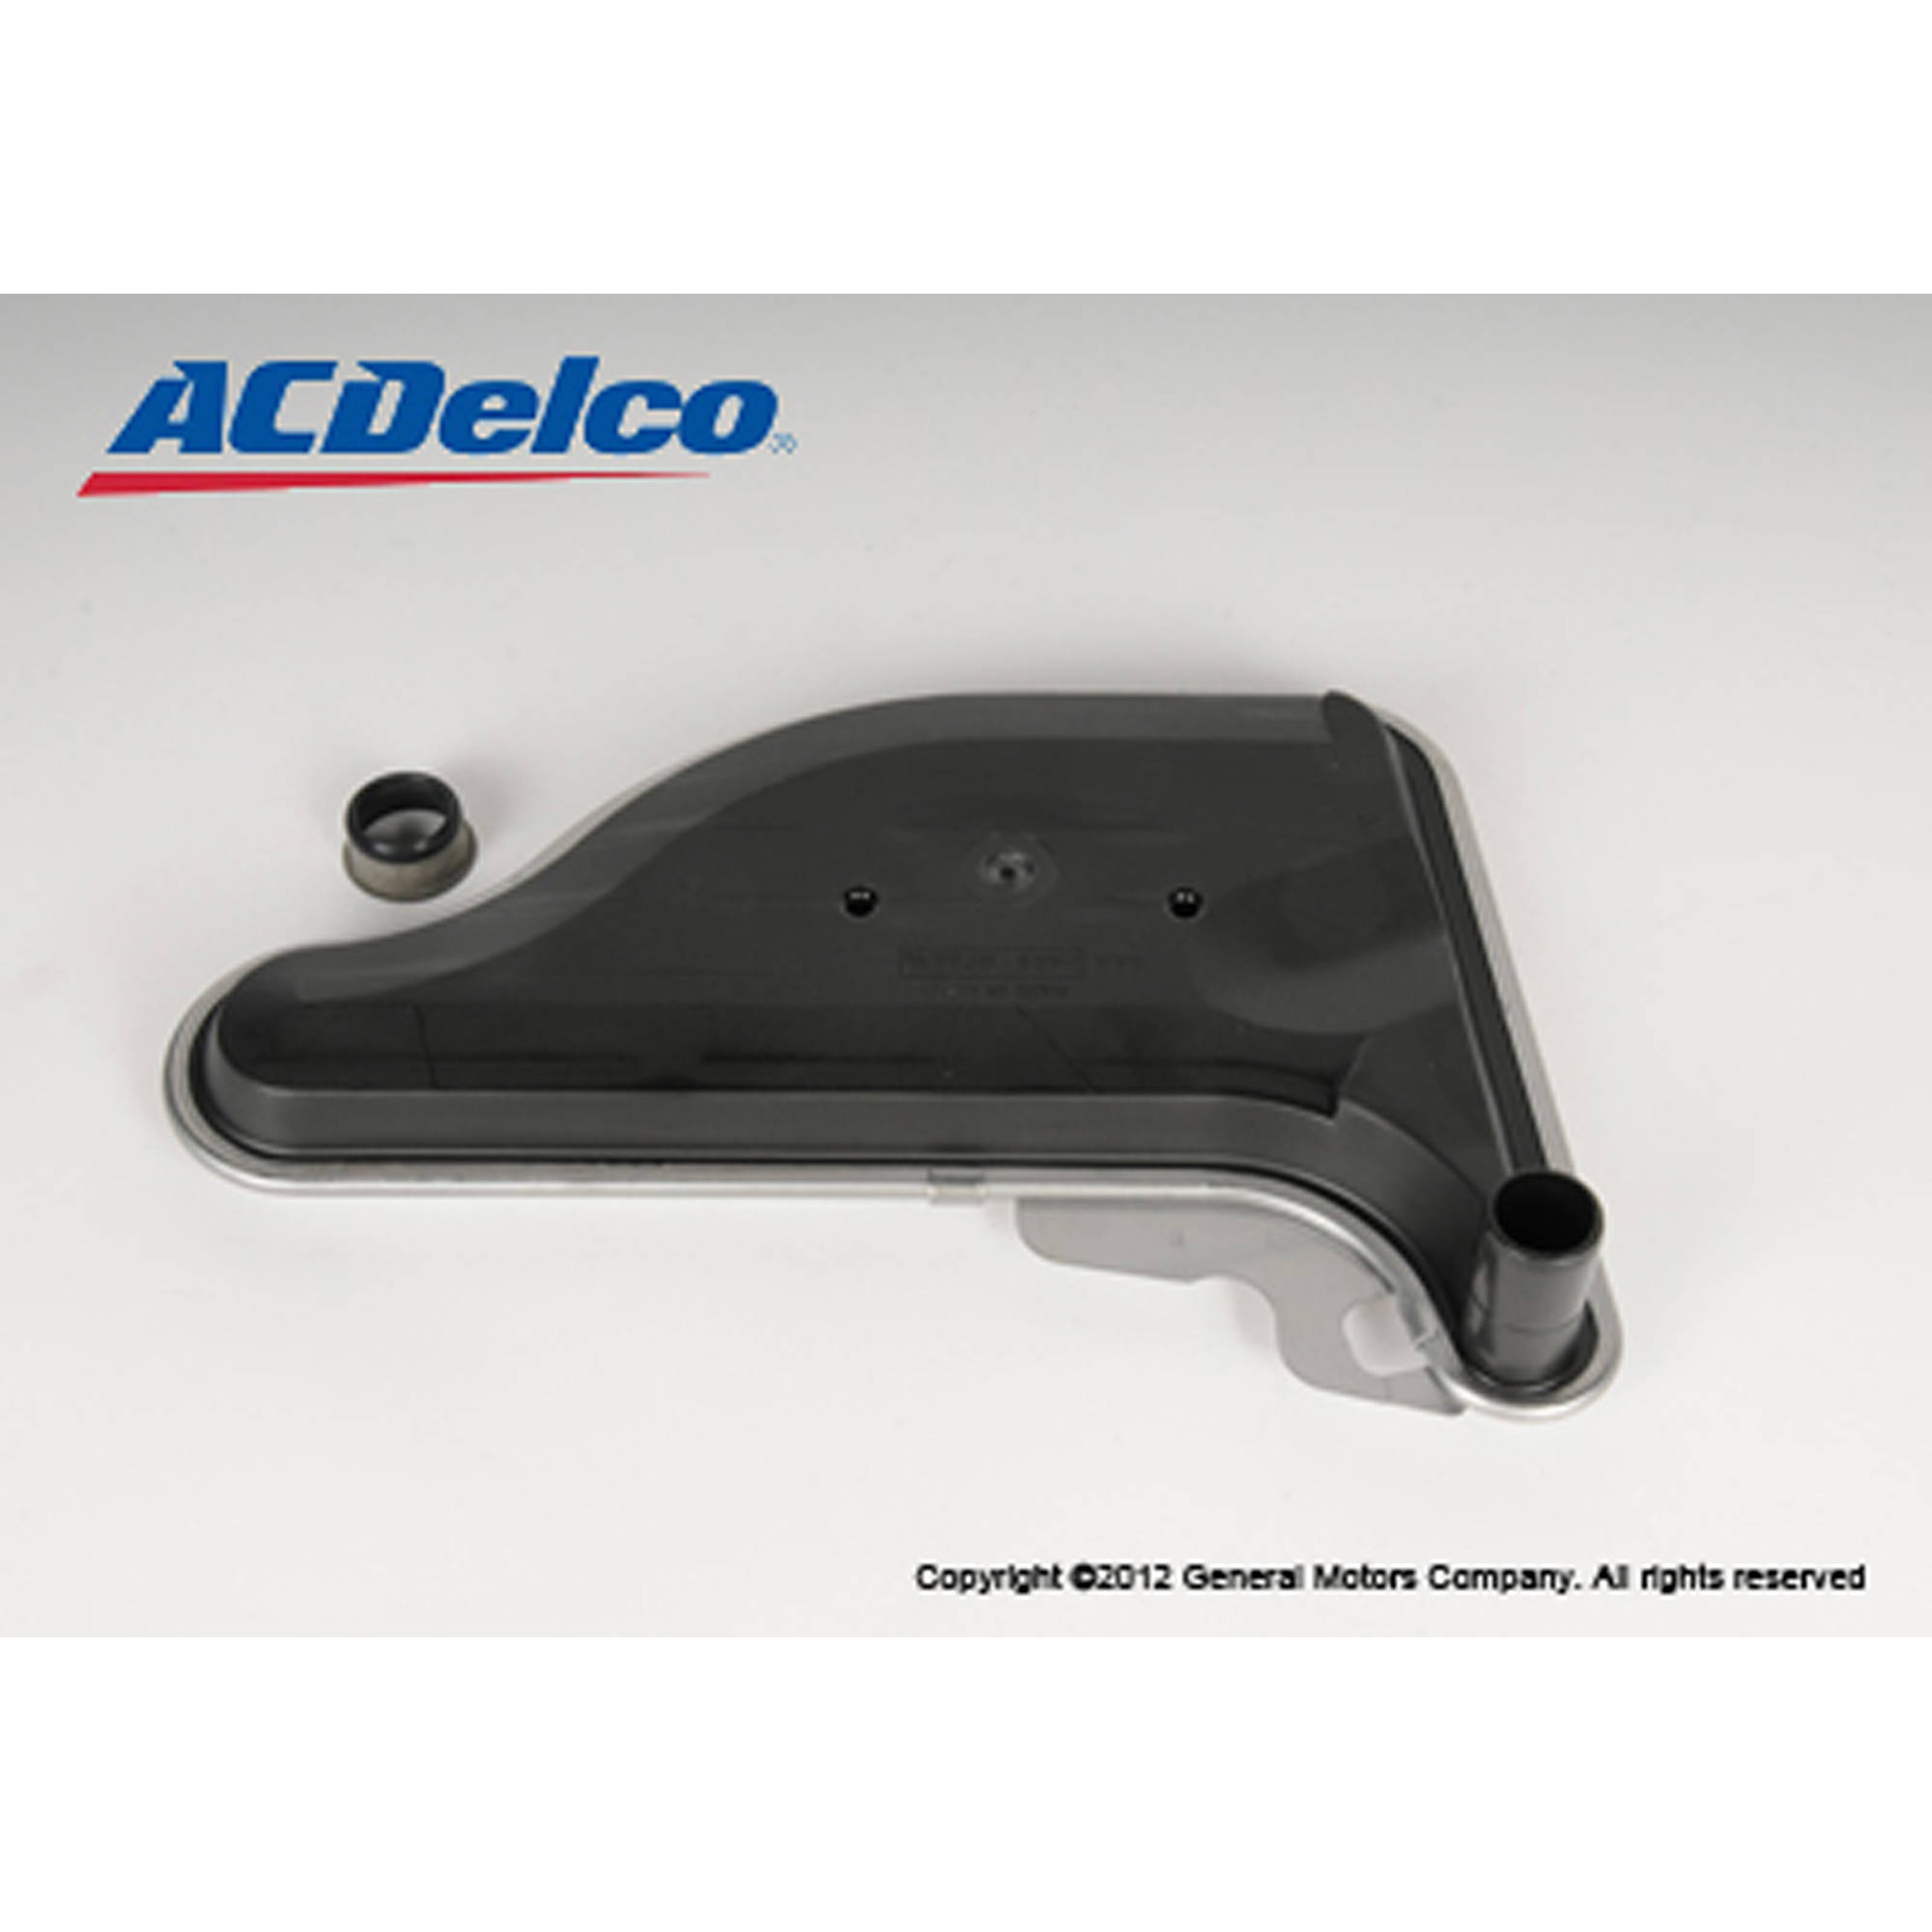 ACDelco Transmission Filter, #24227477